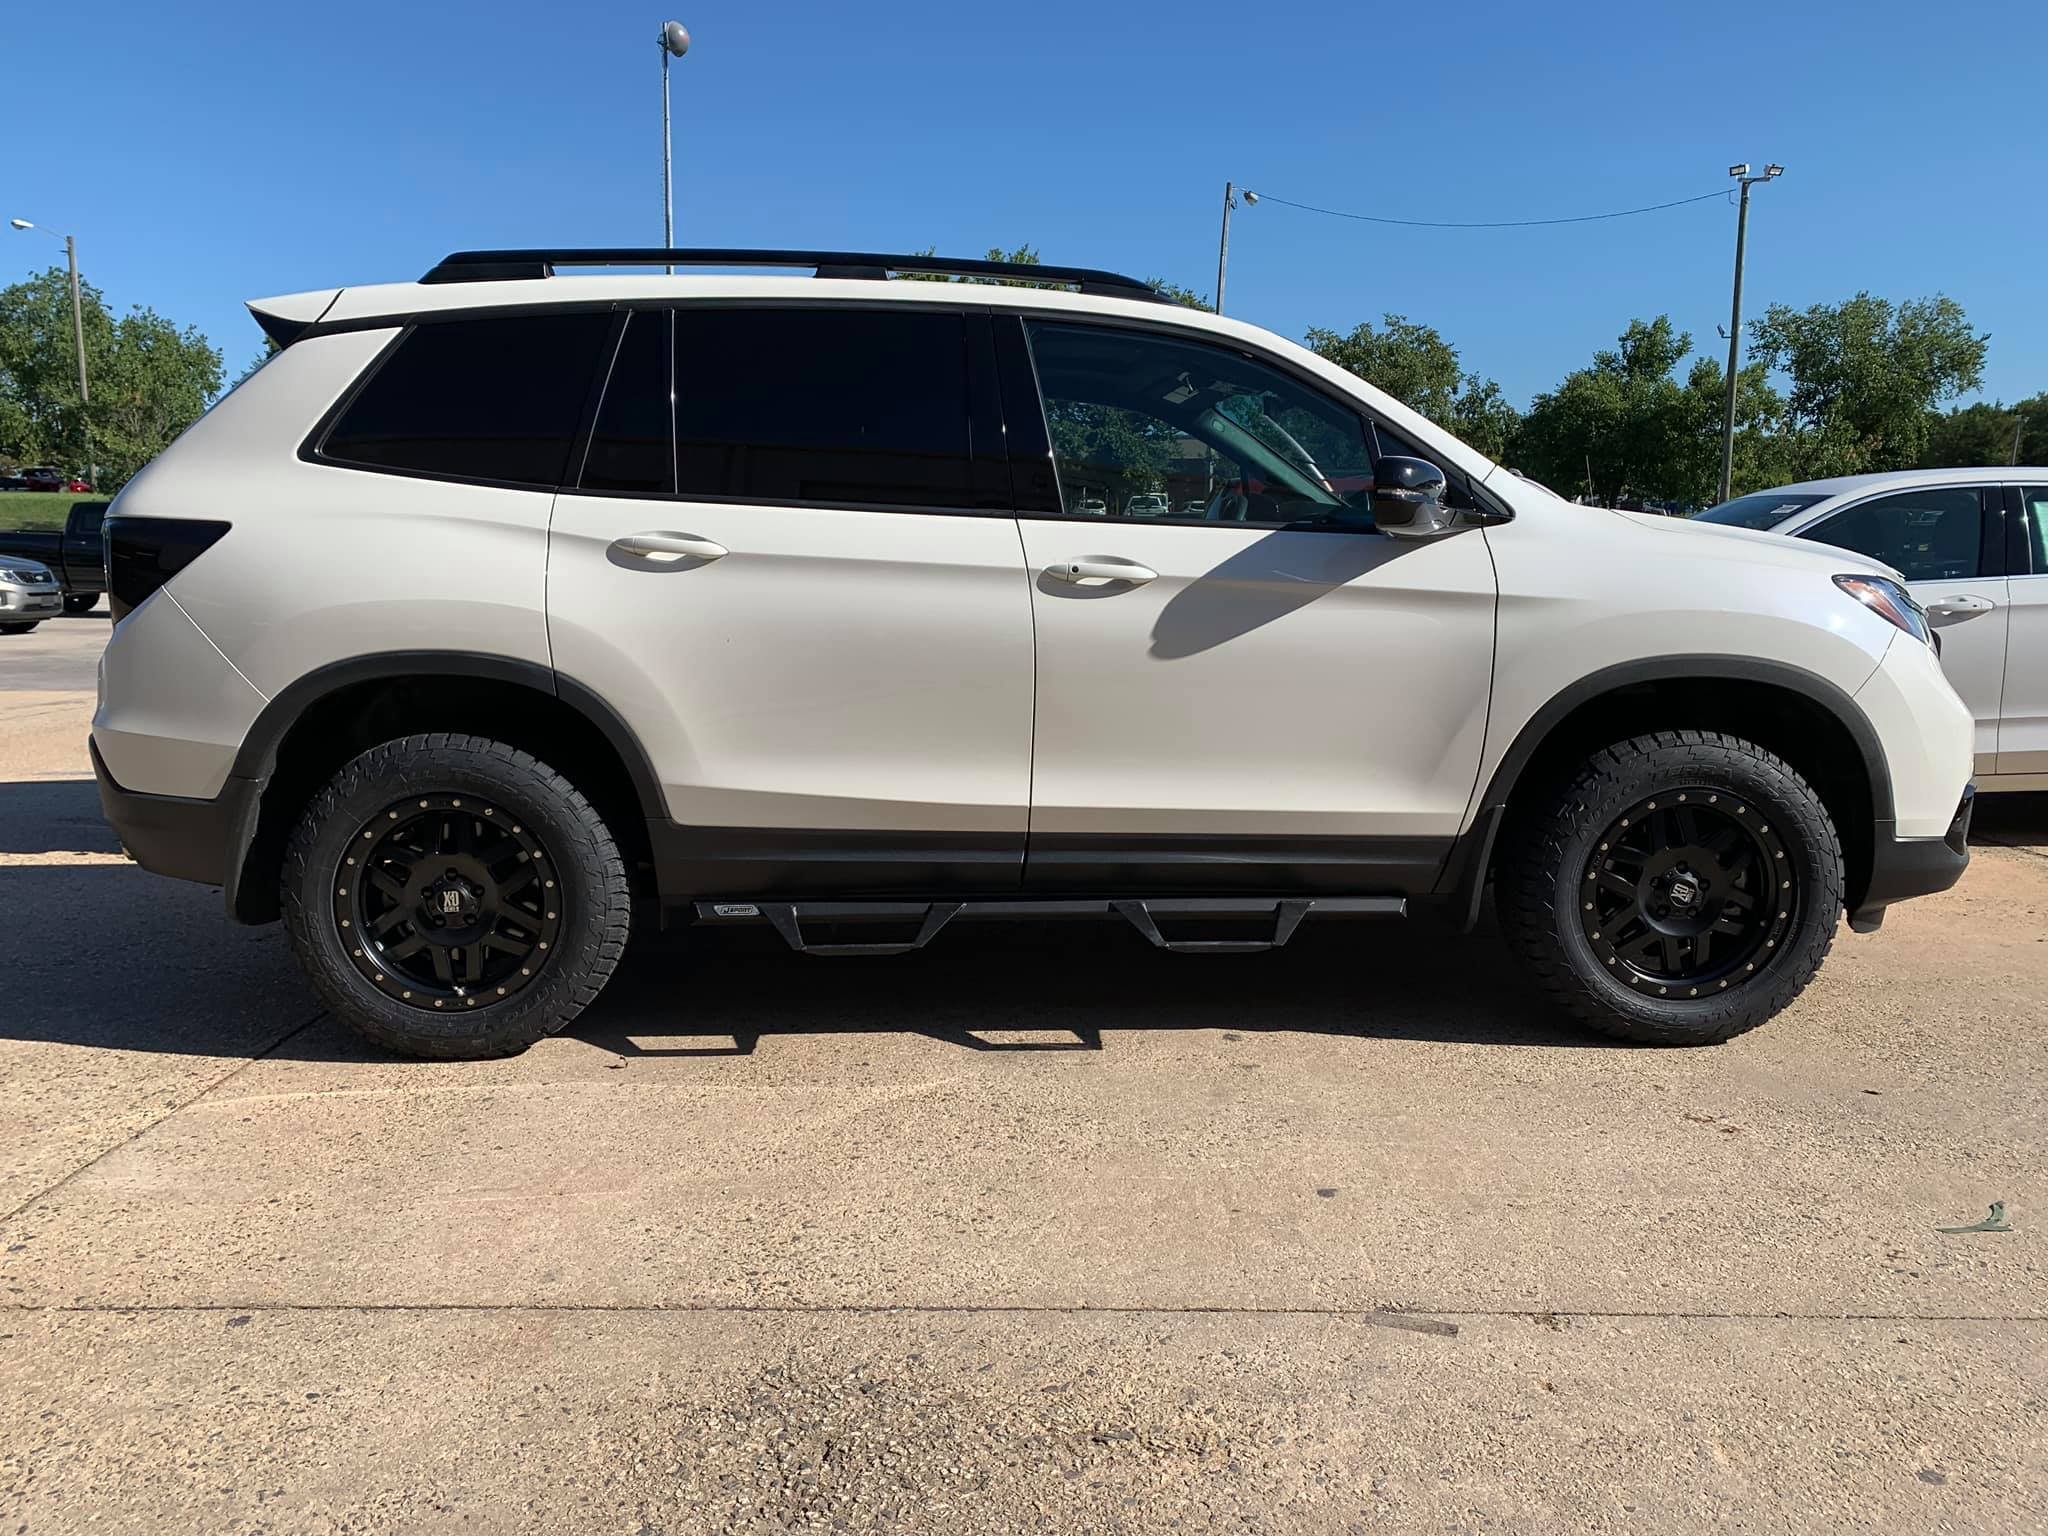 2017 Leveled Honda Pilot White